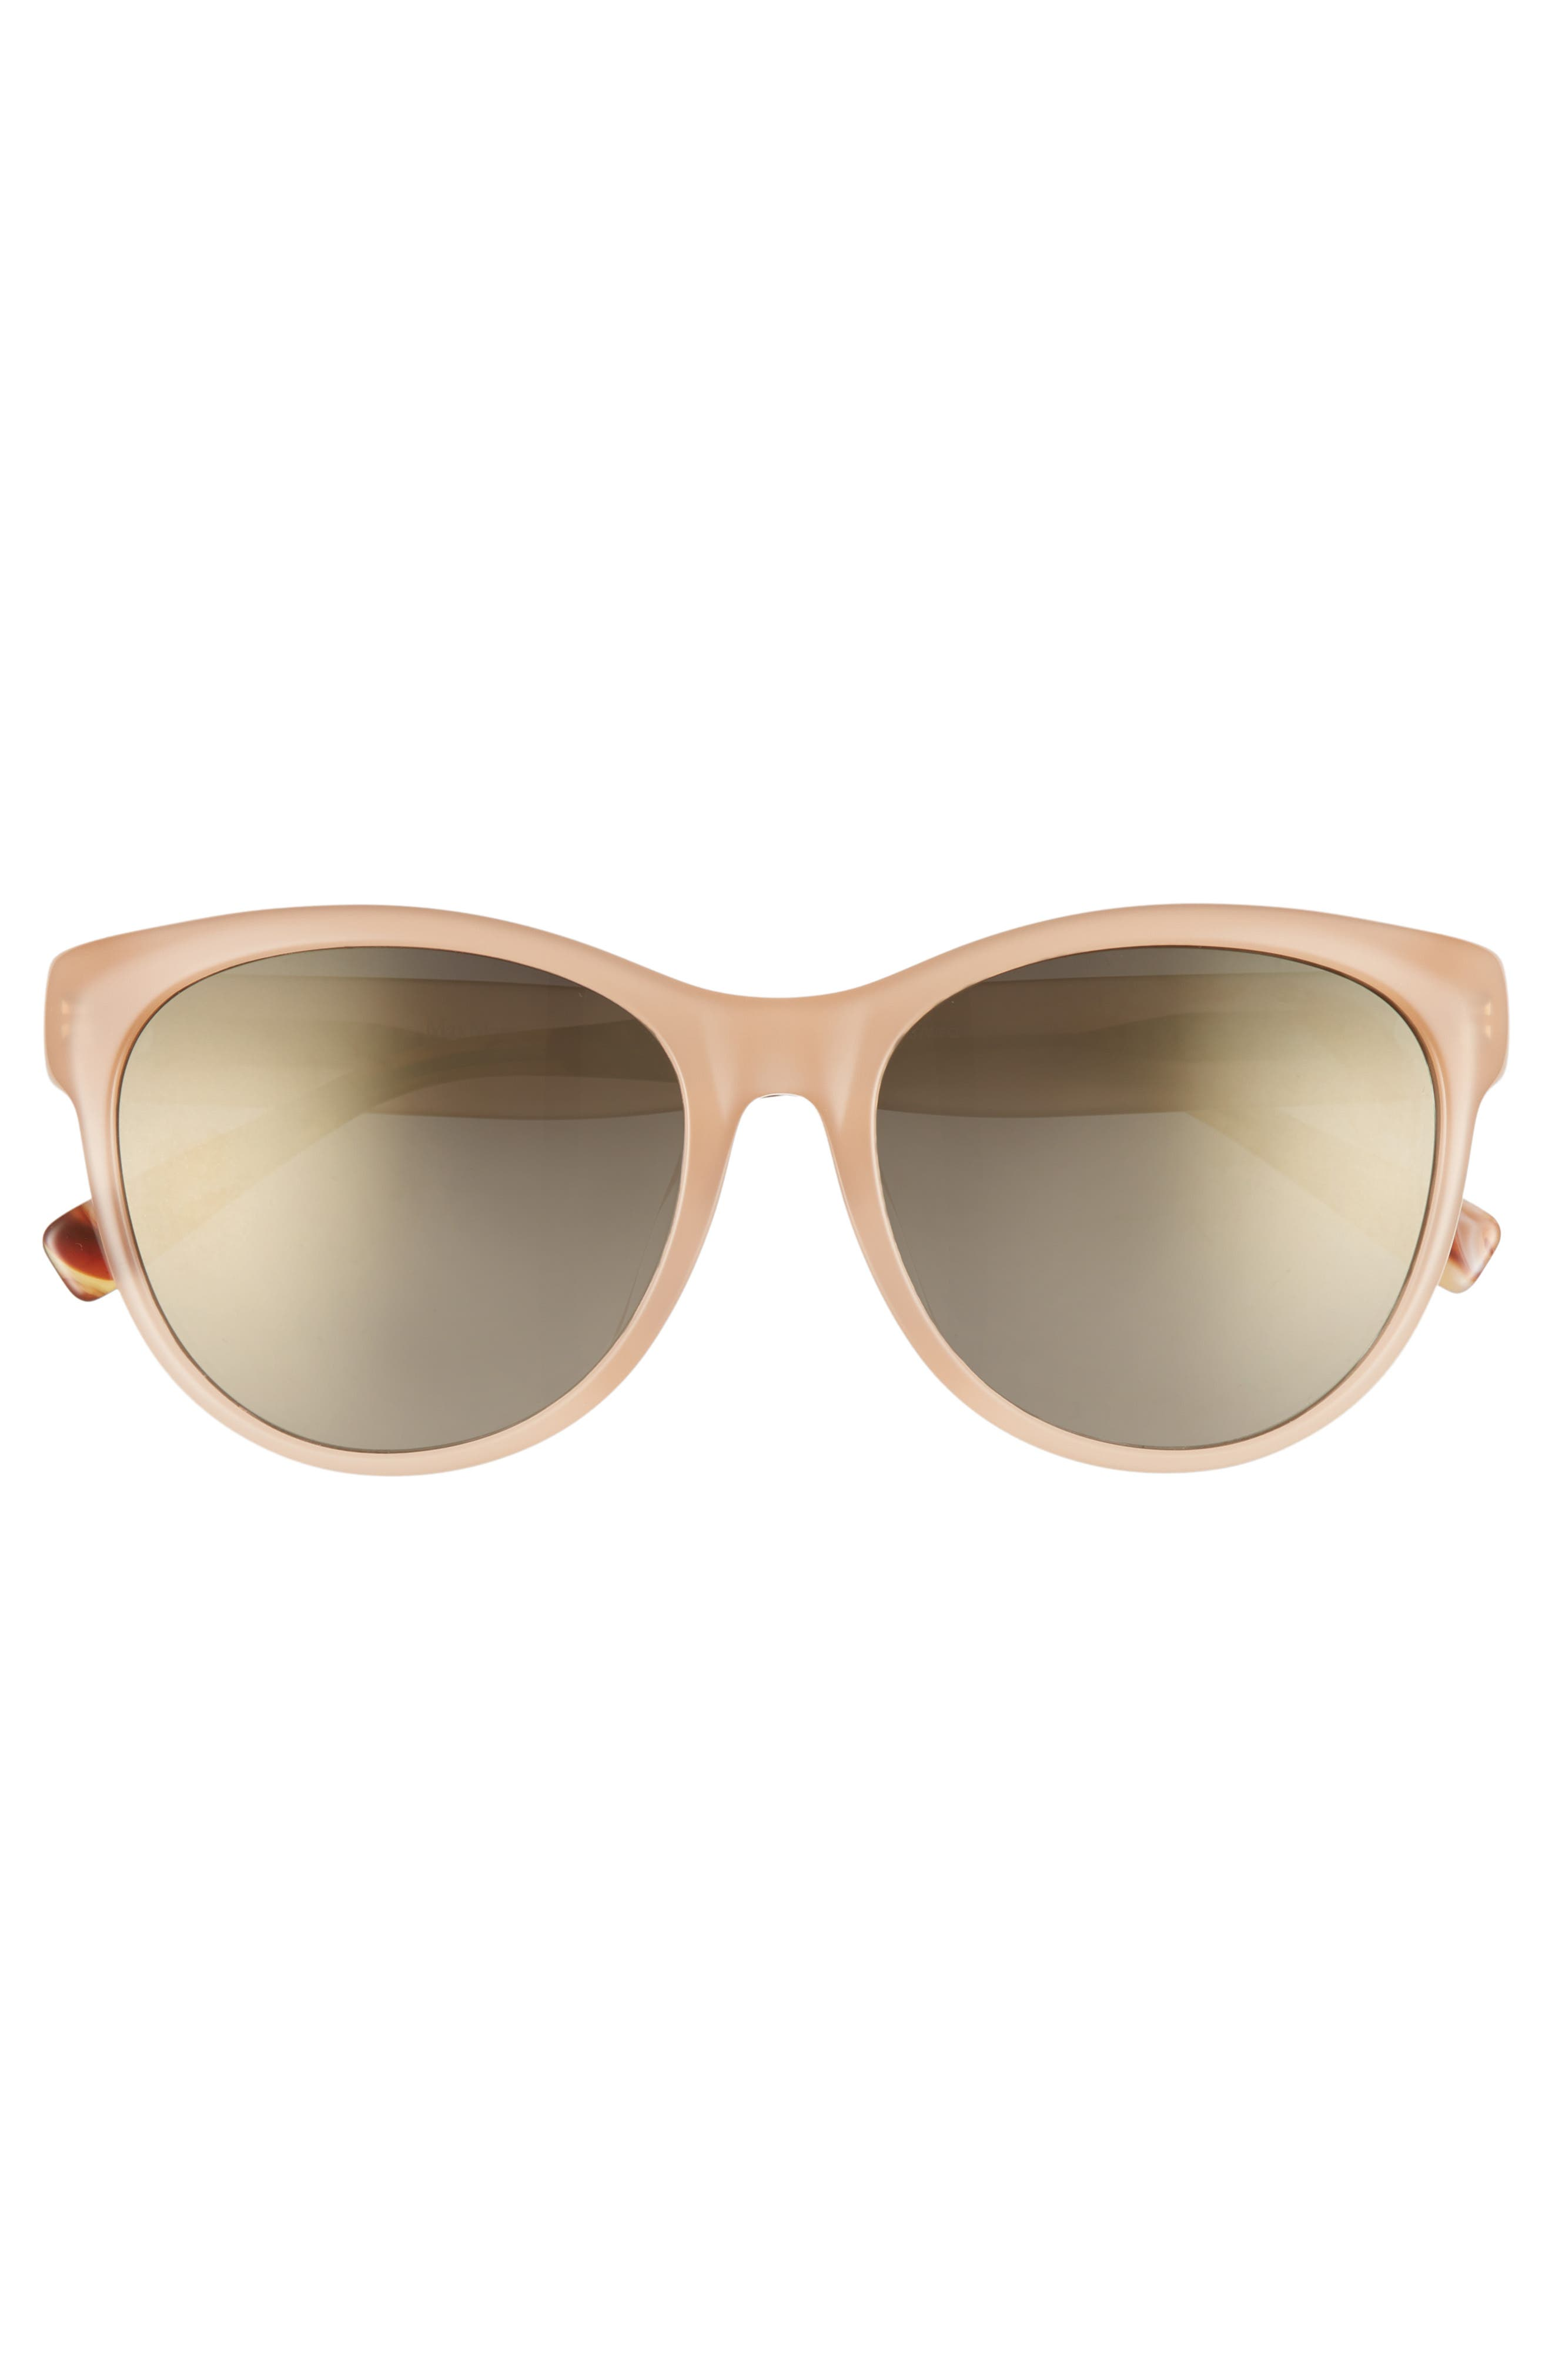 Leisure 57mm Special Fit Sunglasses,                             Alternate thumbnail 3, color,                             250